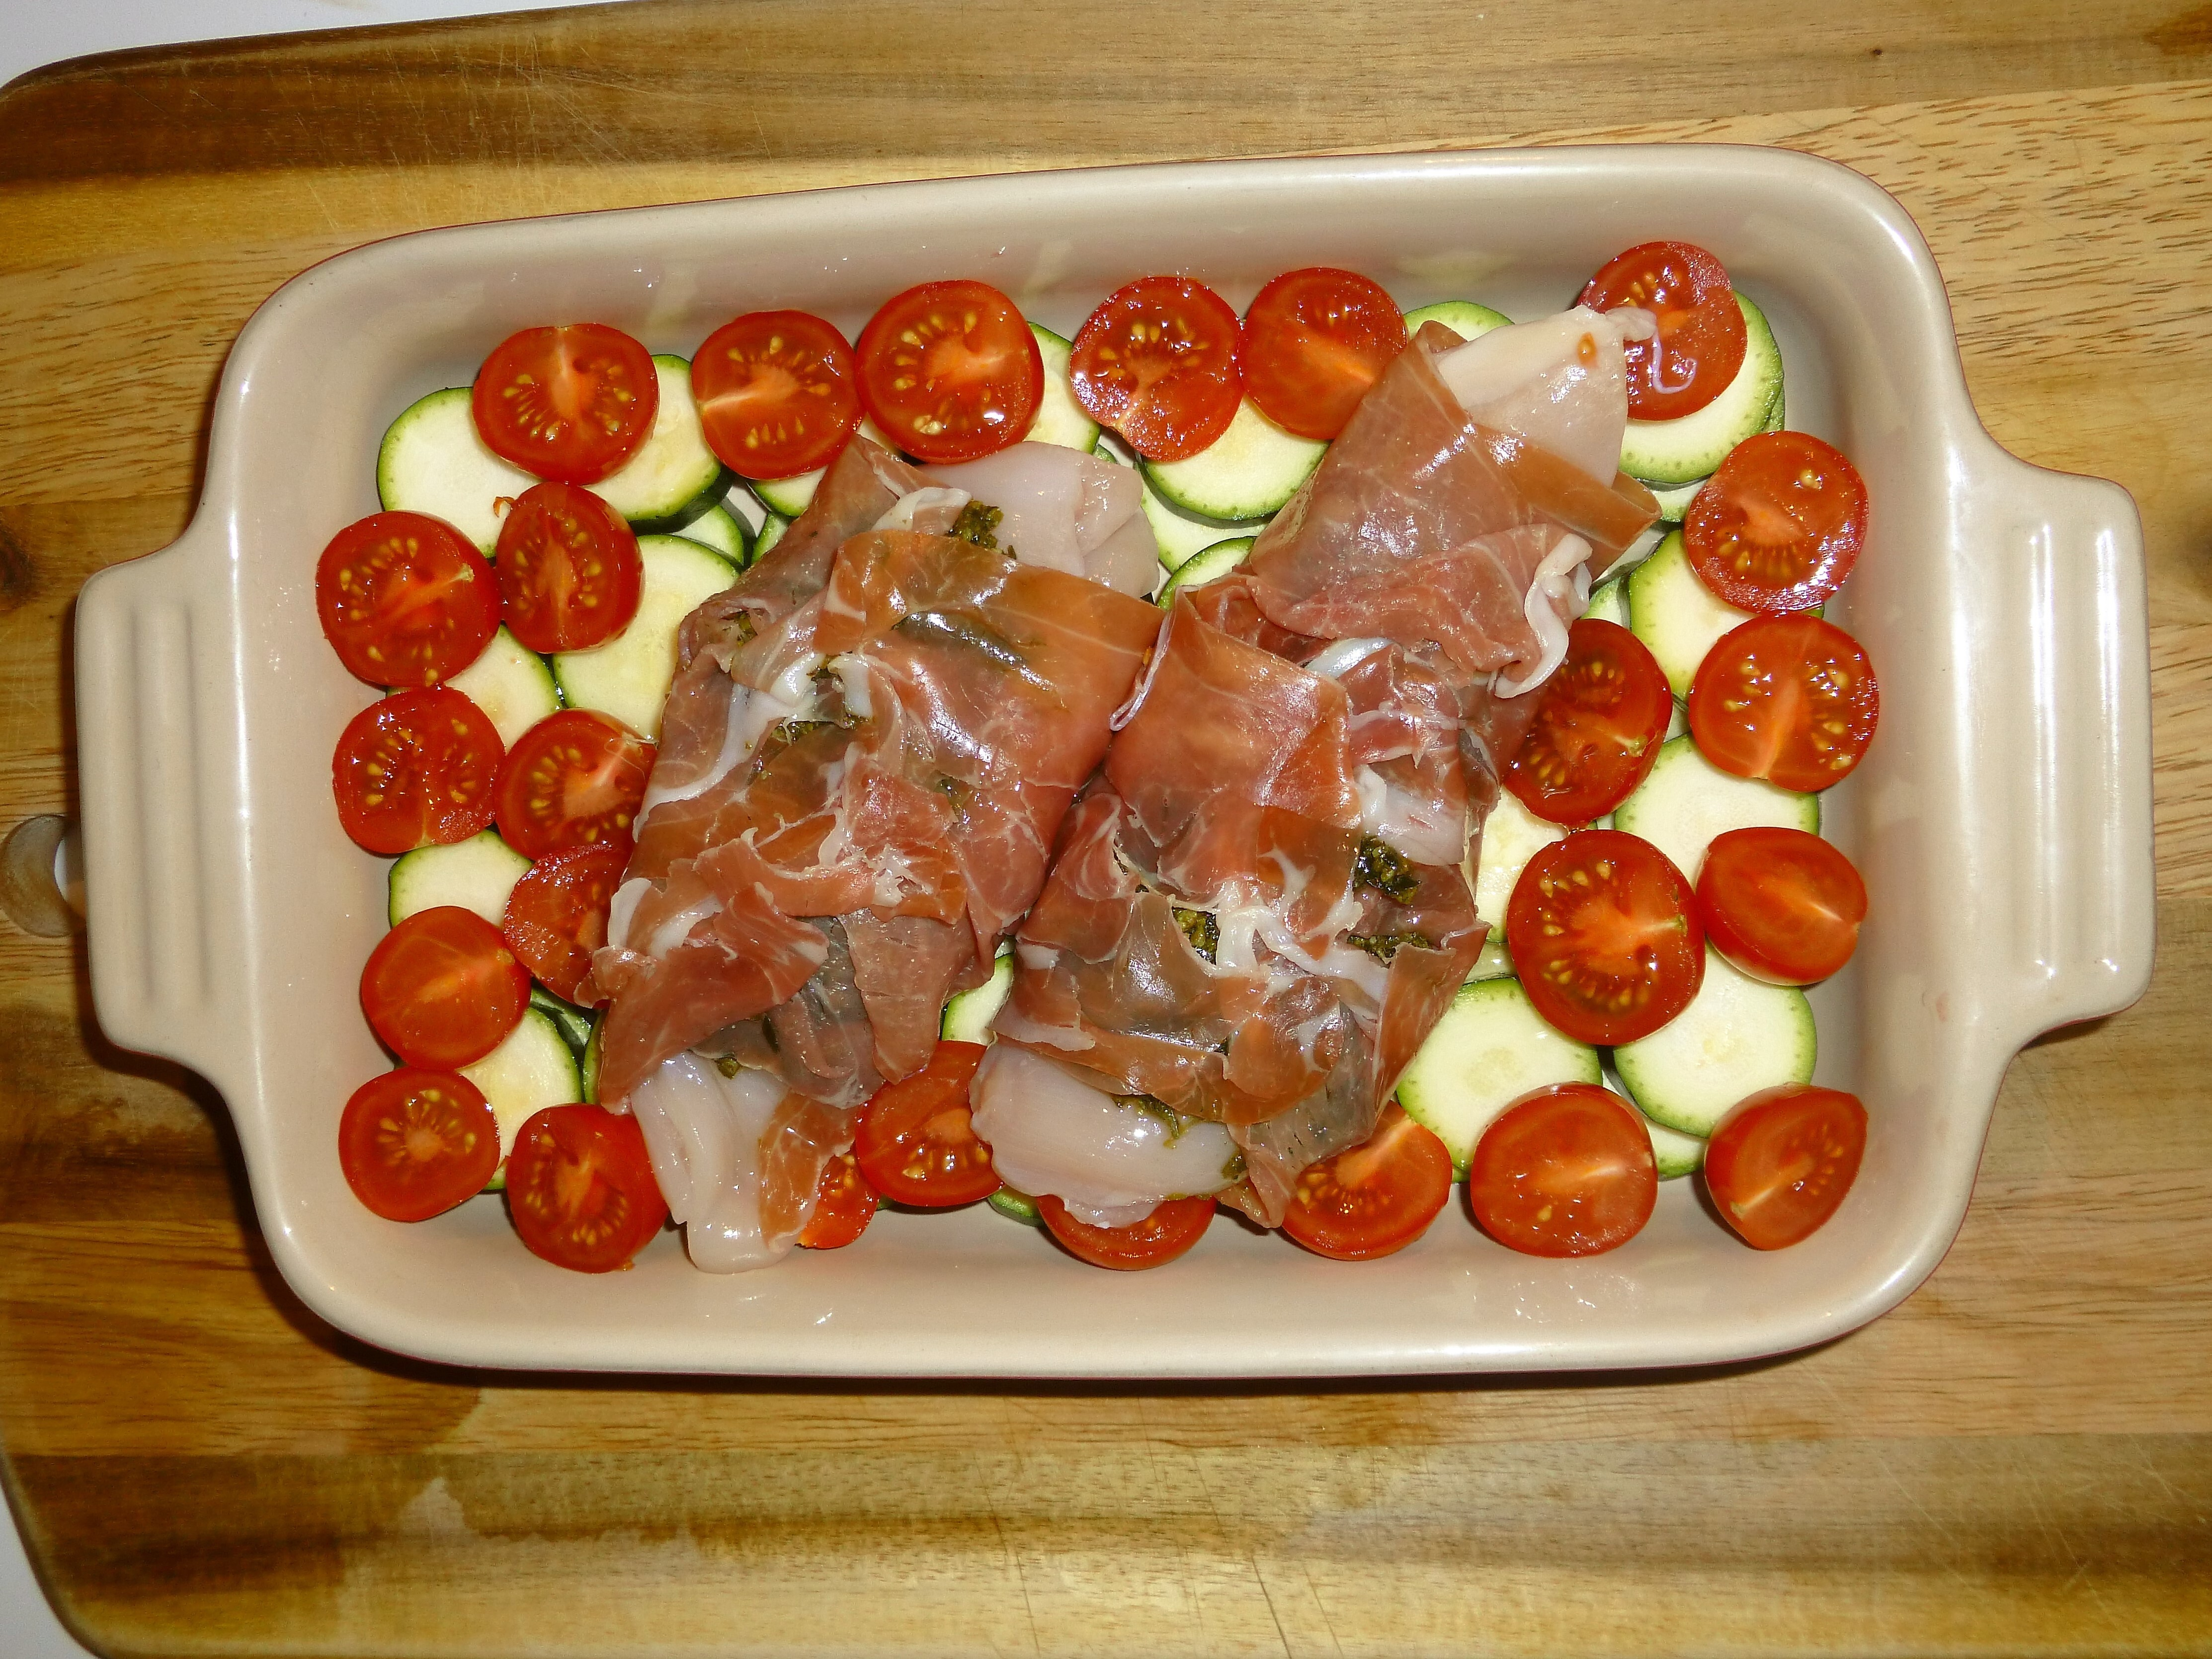 Proscioutto Wrapped Pesto Chicken with Courgettes and Tomatoes Recipe